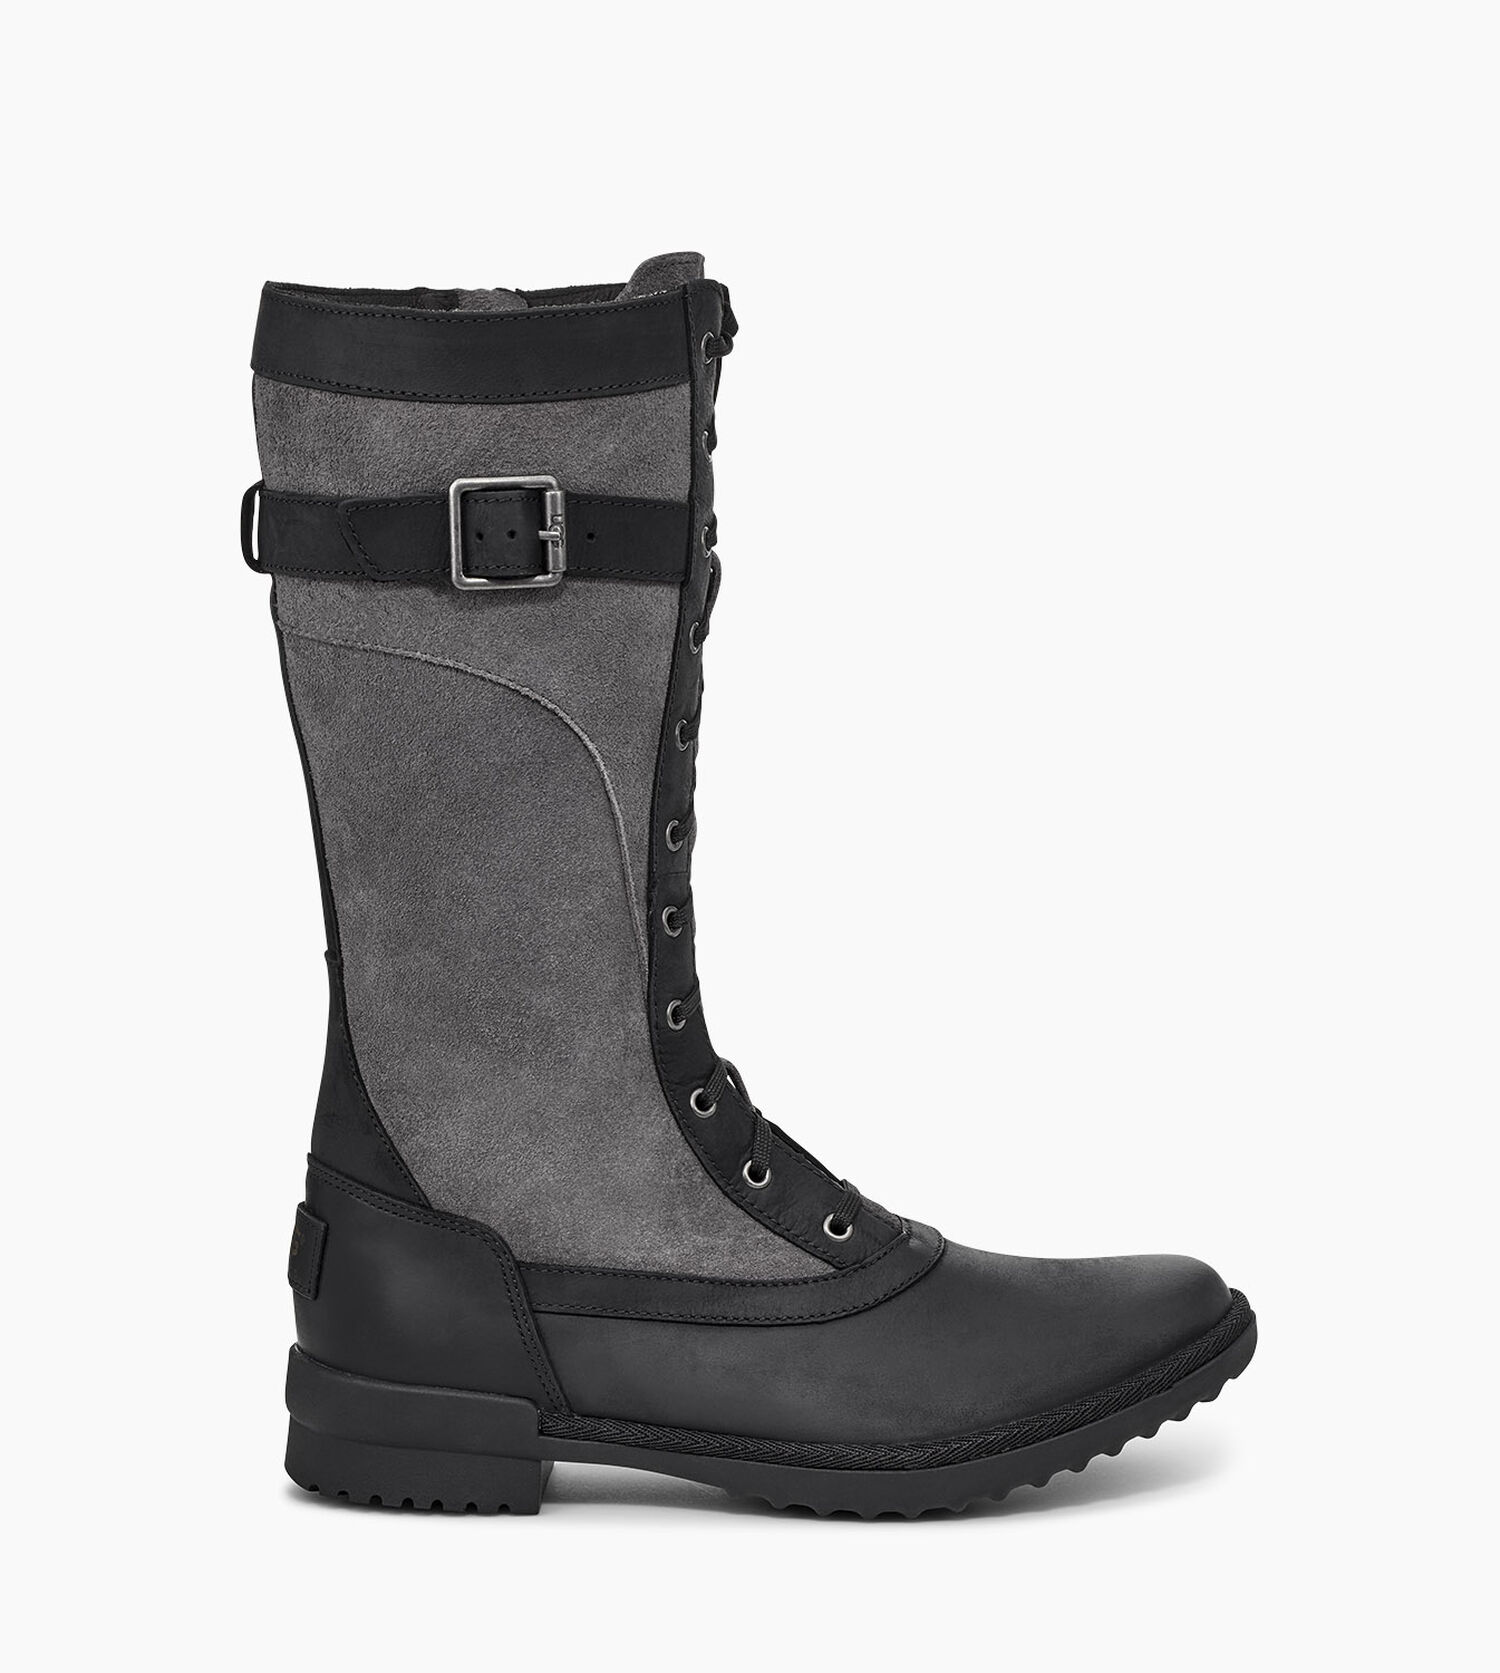 377e5e56f93 Women's Share this product Brystl Tall Boot